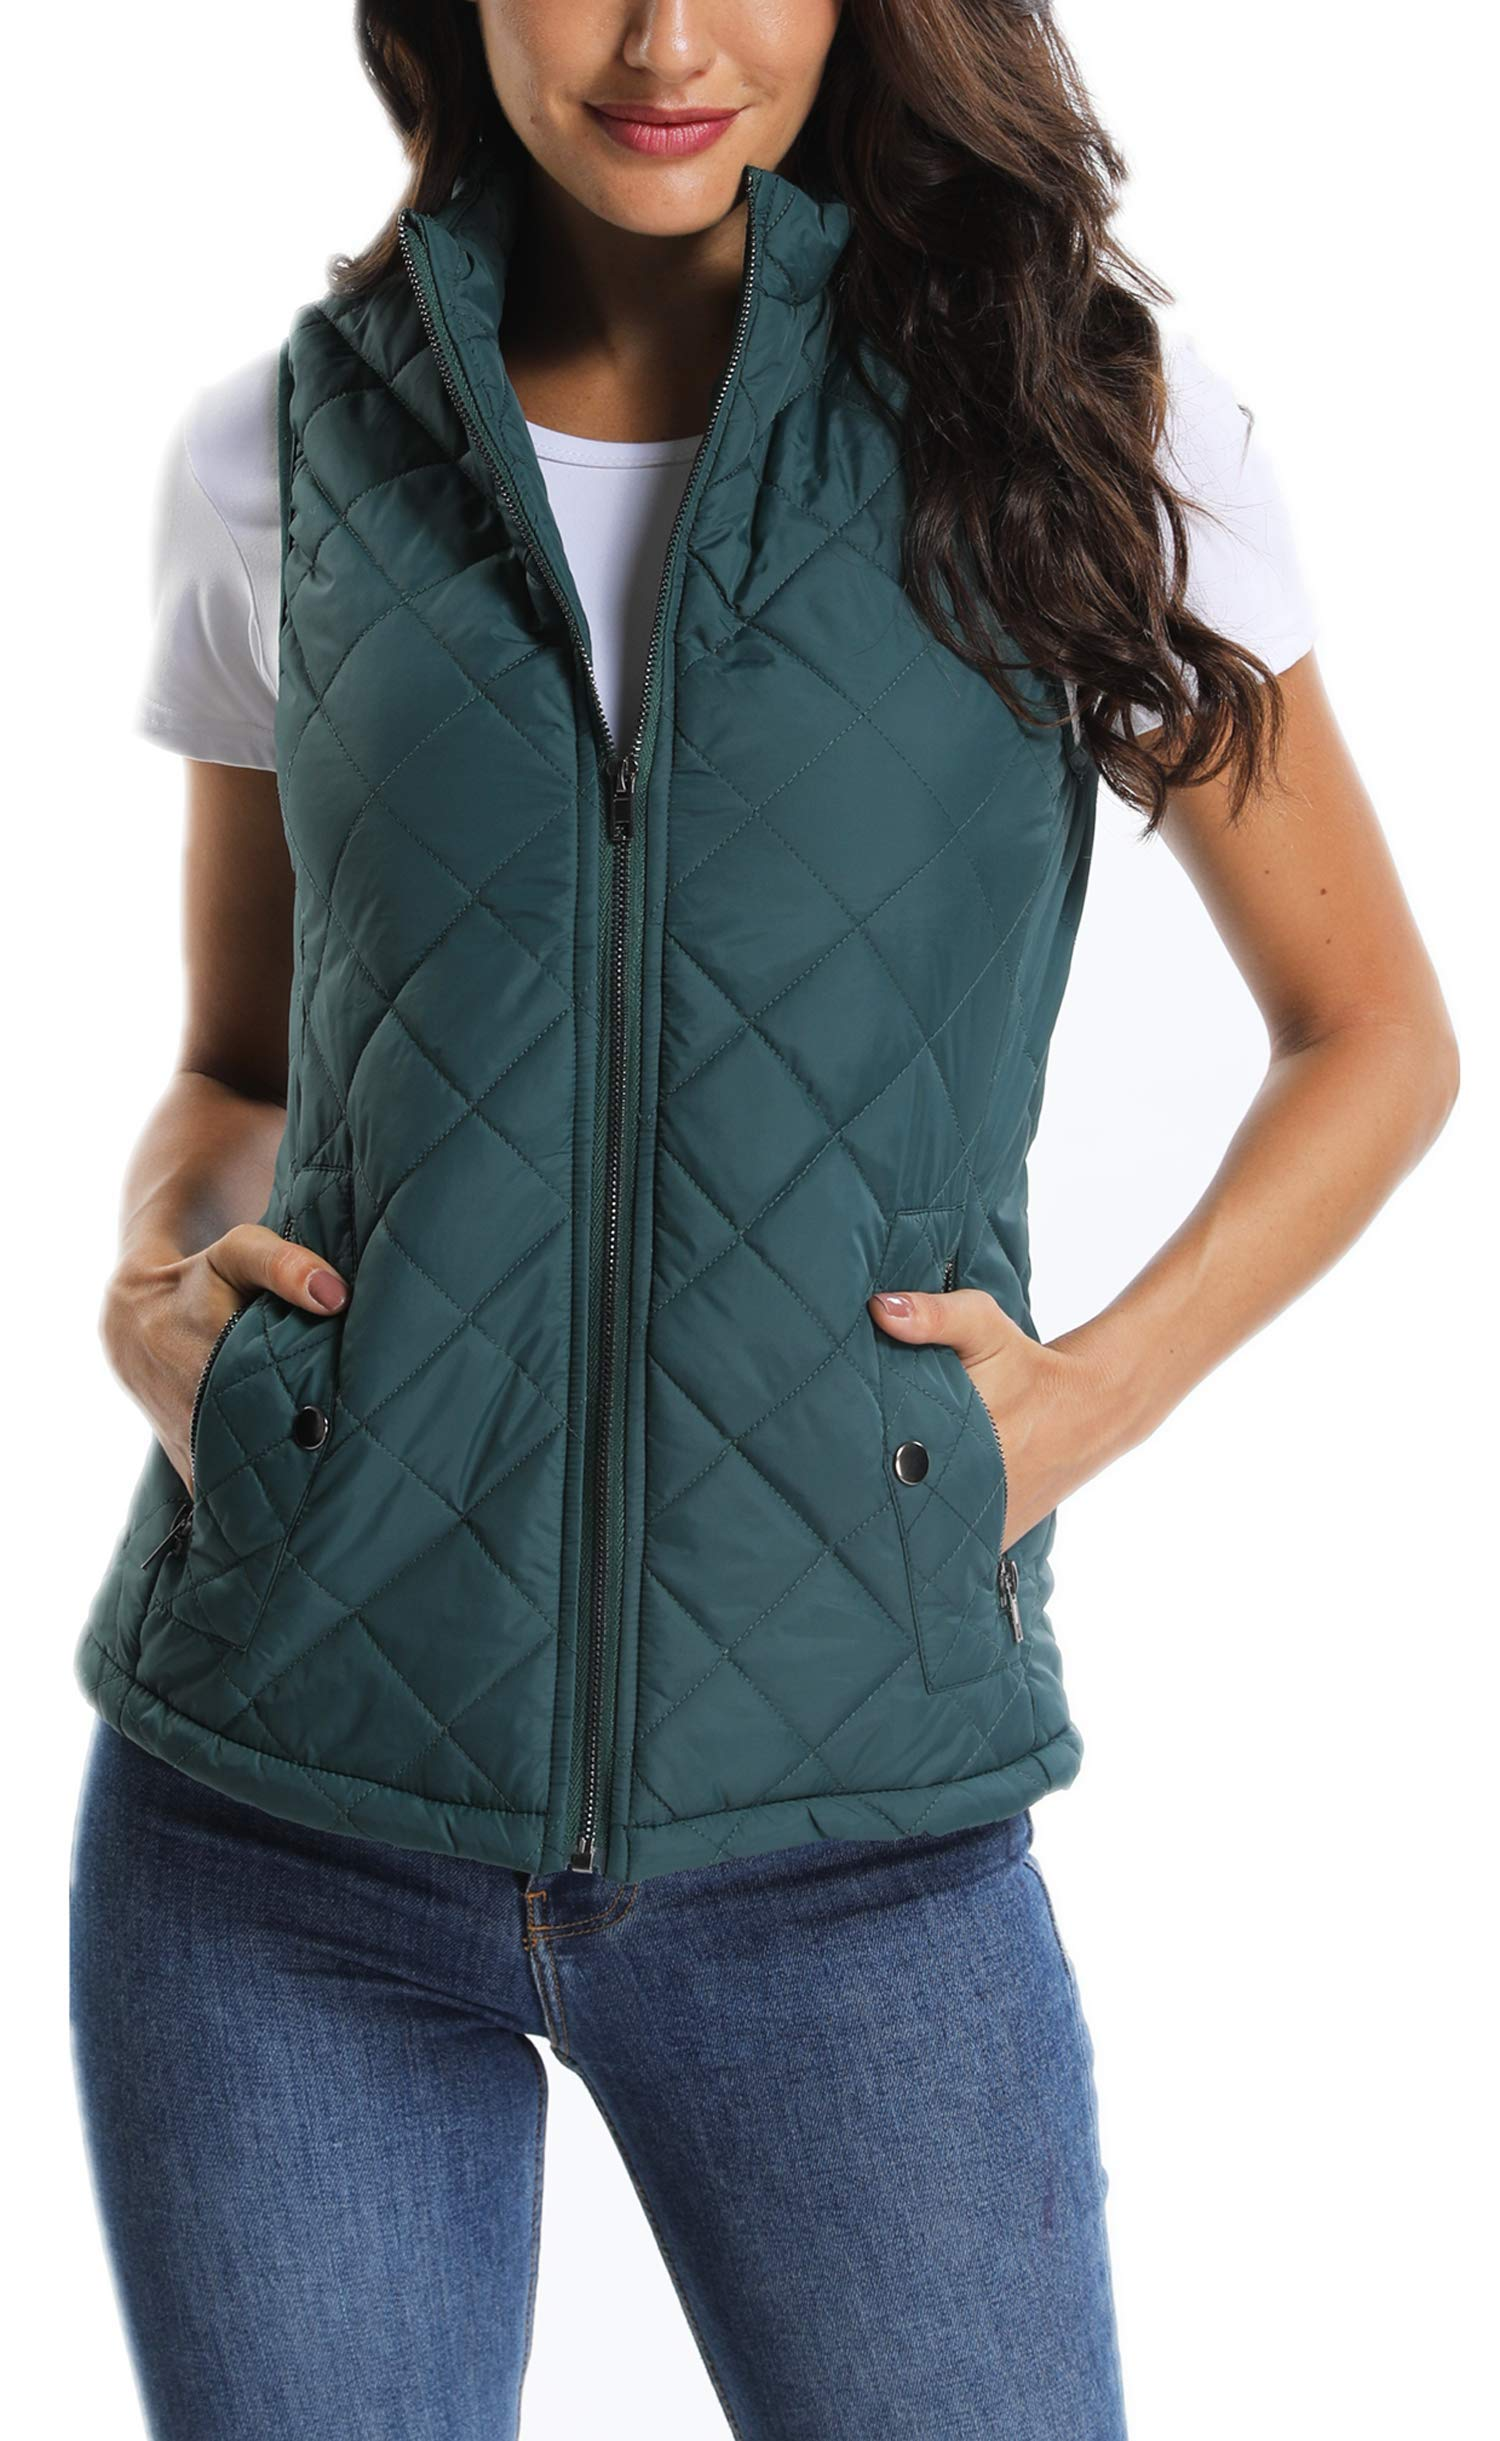 MISS MOLY Women's Lightweight Quilted Padded Vest Stand Collar Zip Up Front Gilet Quilted Green M